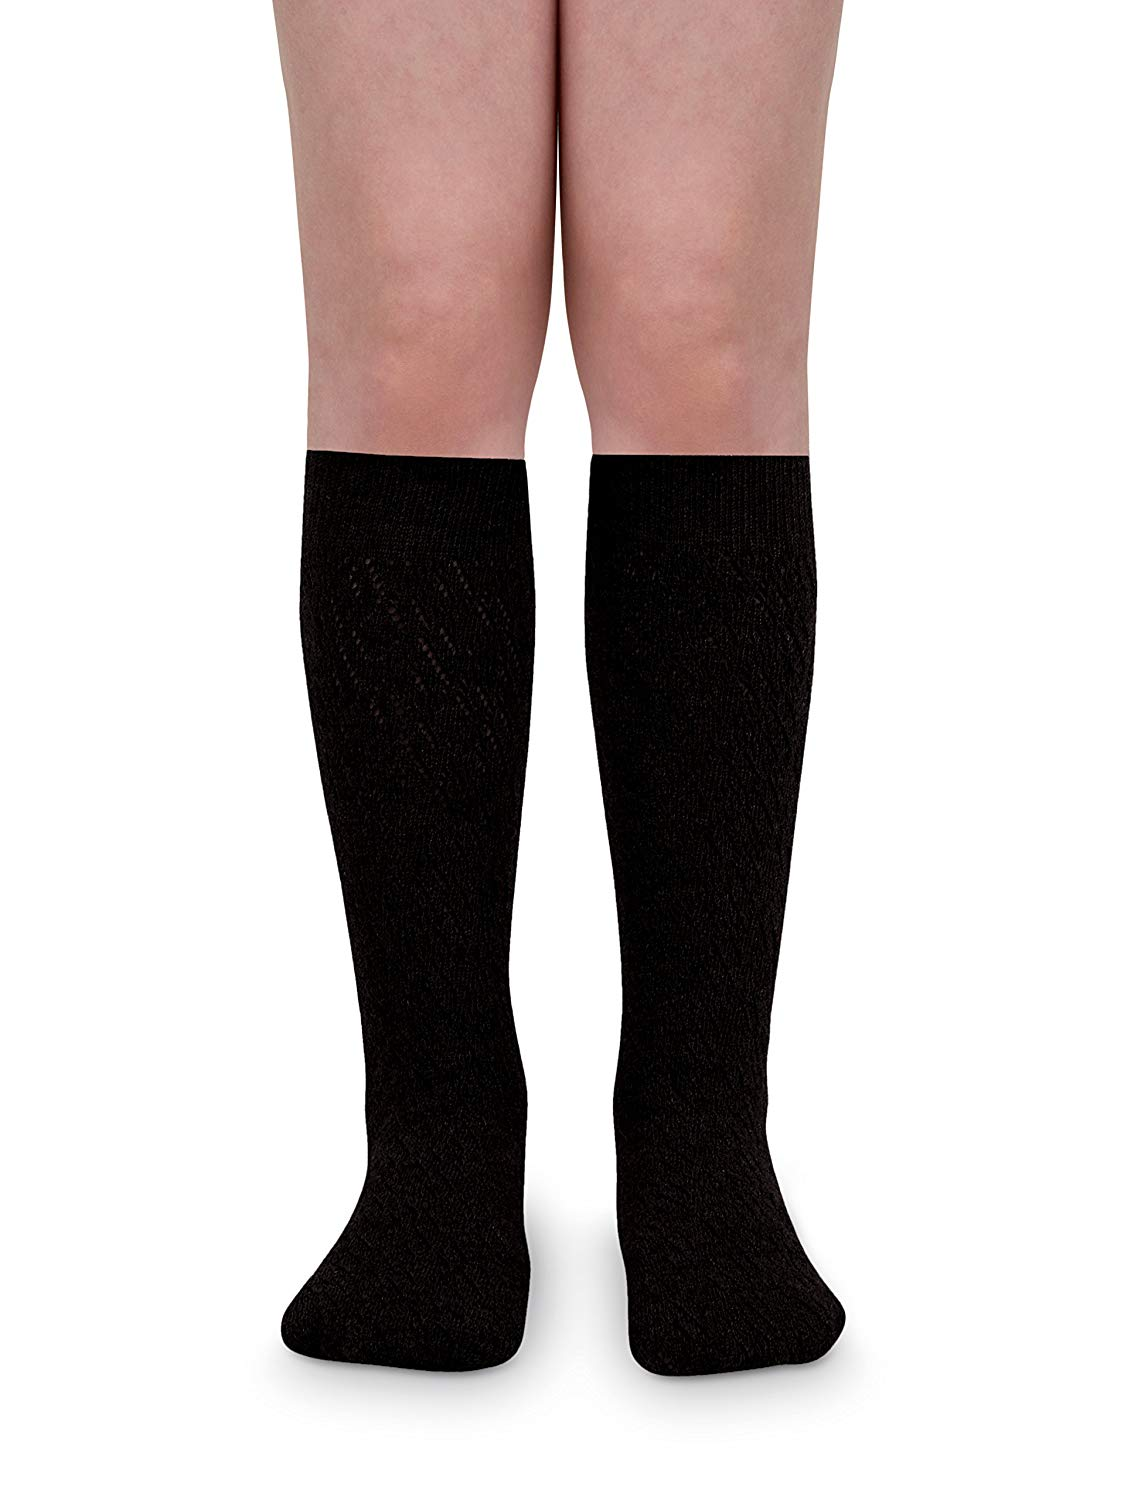 Jefferies Socks Girls School Uniform Nylon Dress Knee High Socks 2 Pair Pack